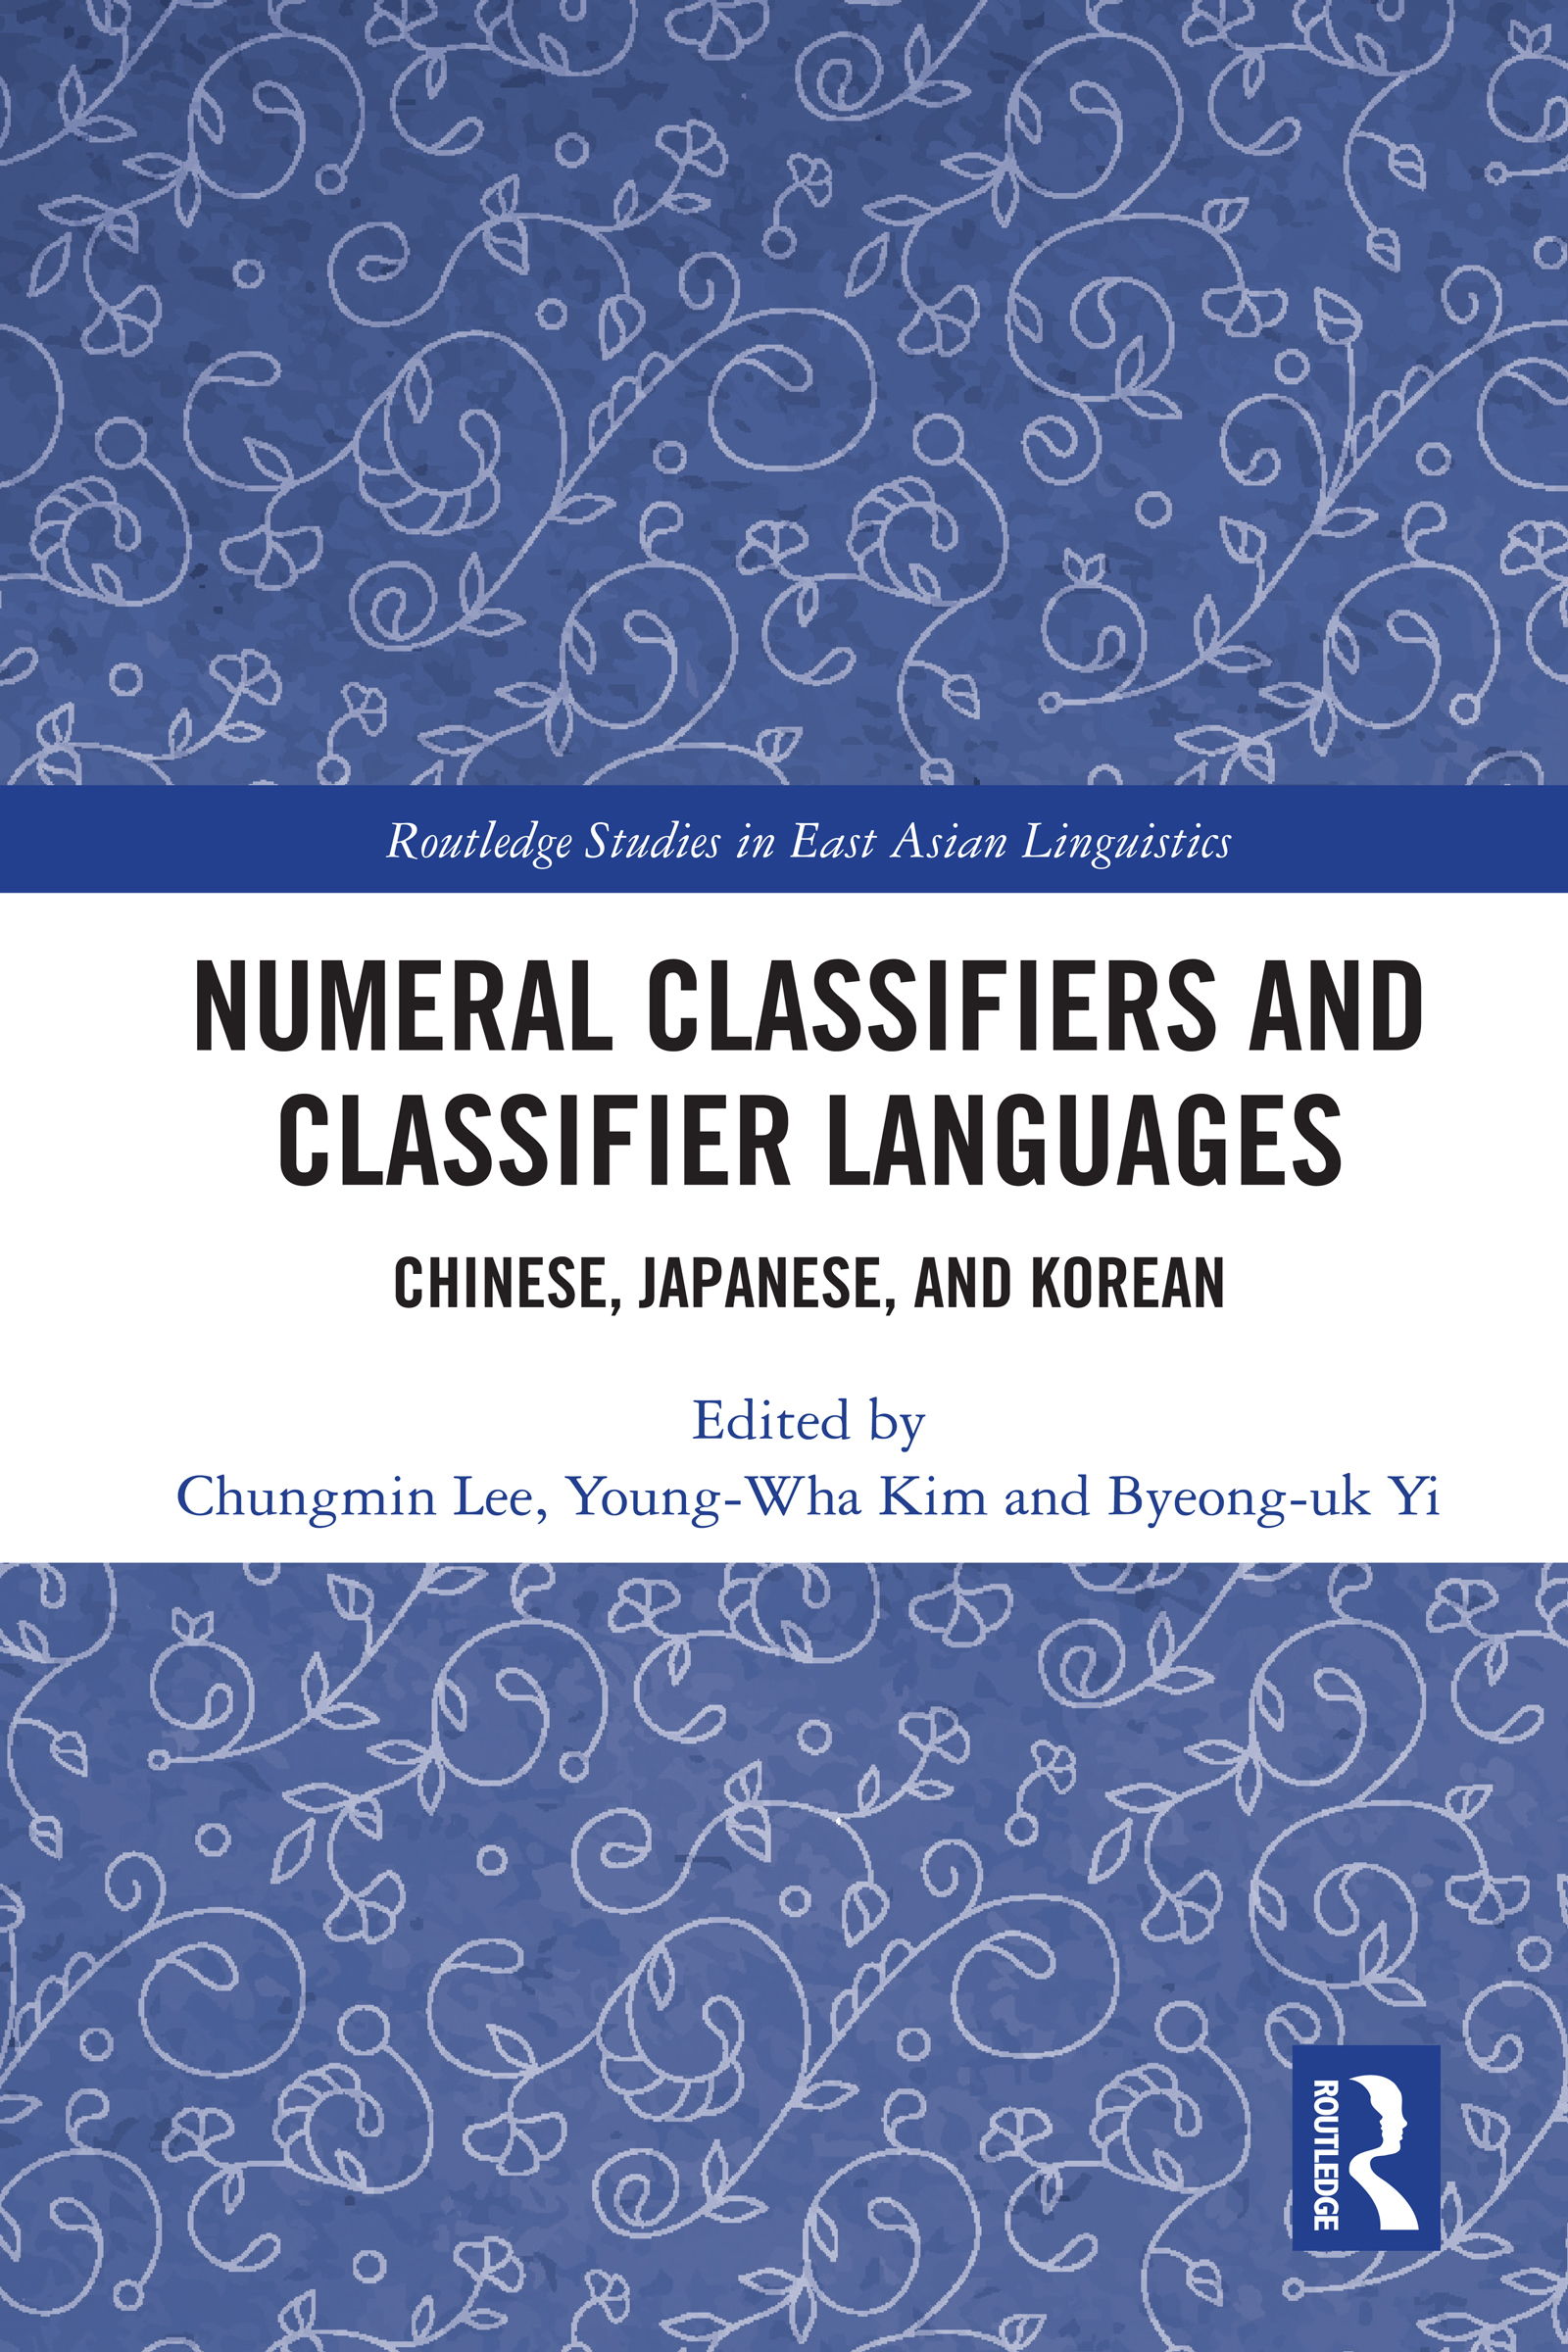 Numeral Classifiers and Classifier Languages